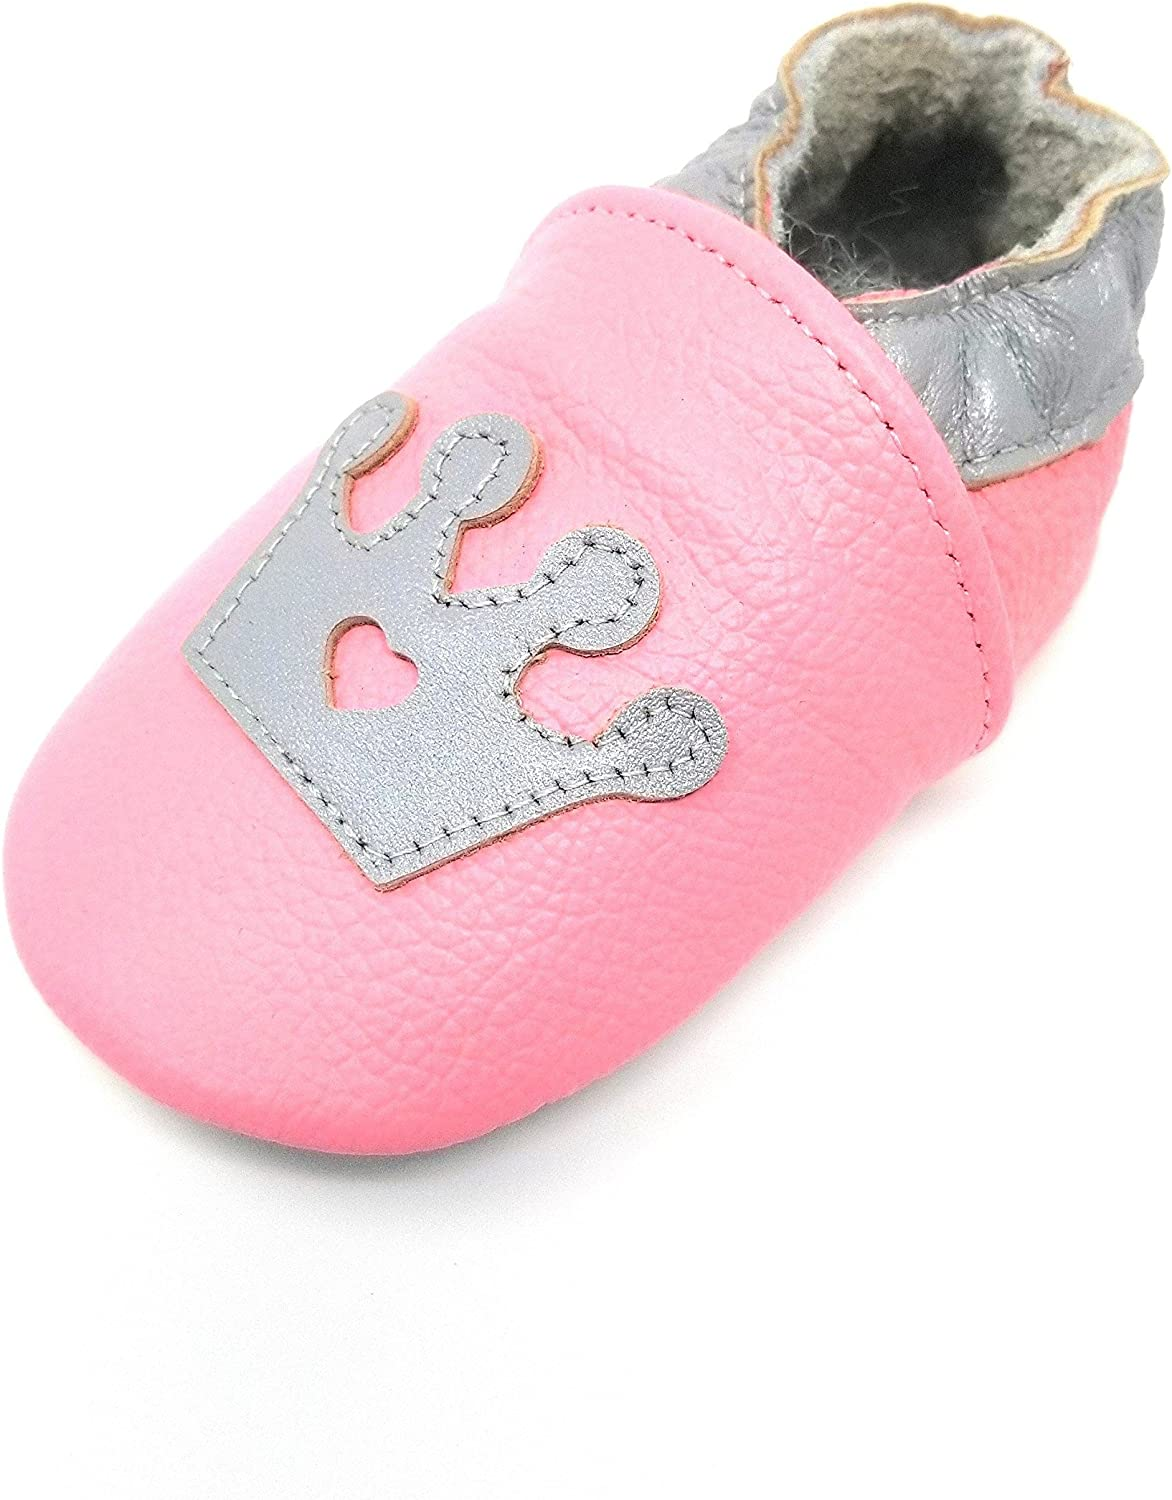 ❤️Rolayllove❤️ Baby Girl Moccasins Princess Sparkly Premium Lightweight Soft Sole Toddler Girl Sandals Shoes 12M-12Years